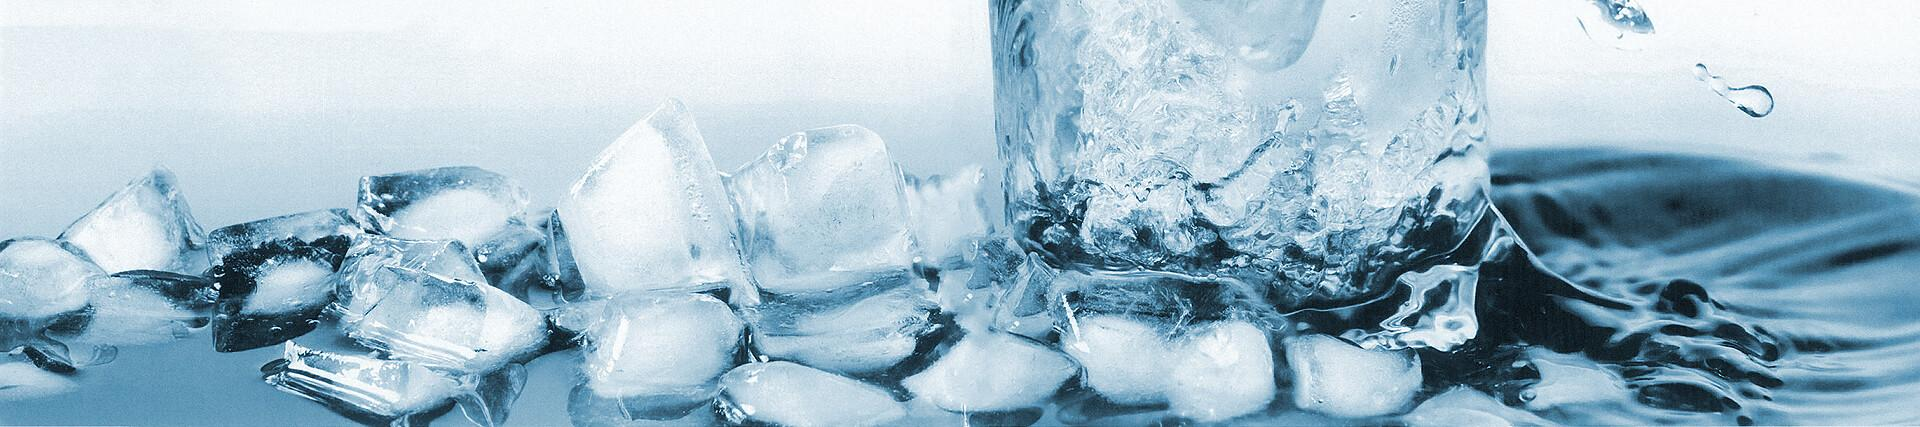 Icewater